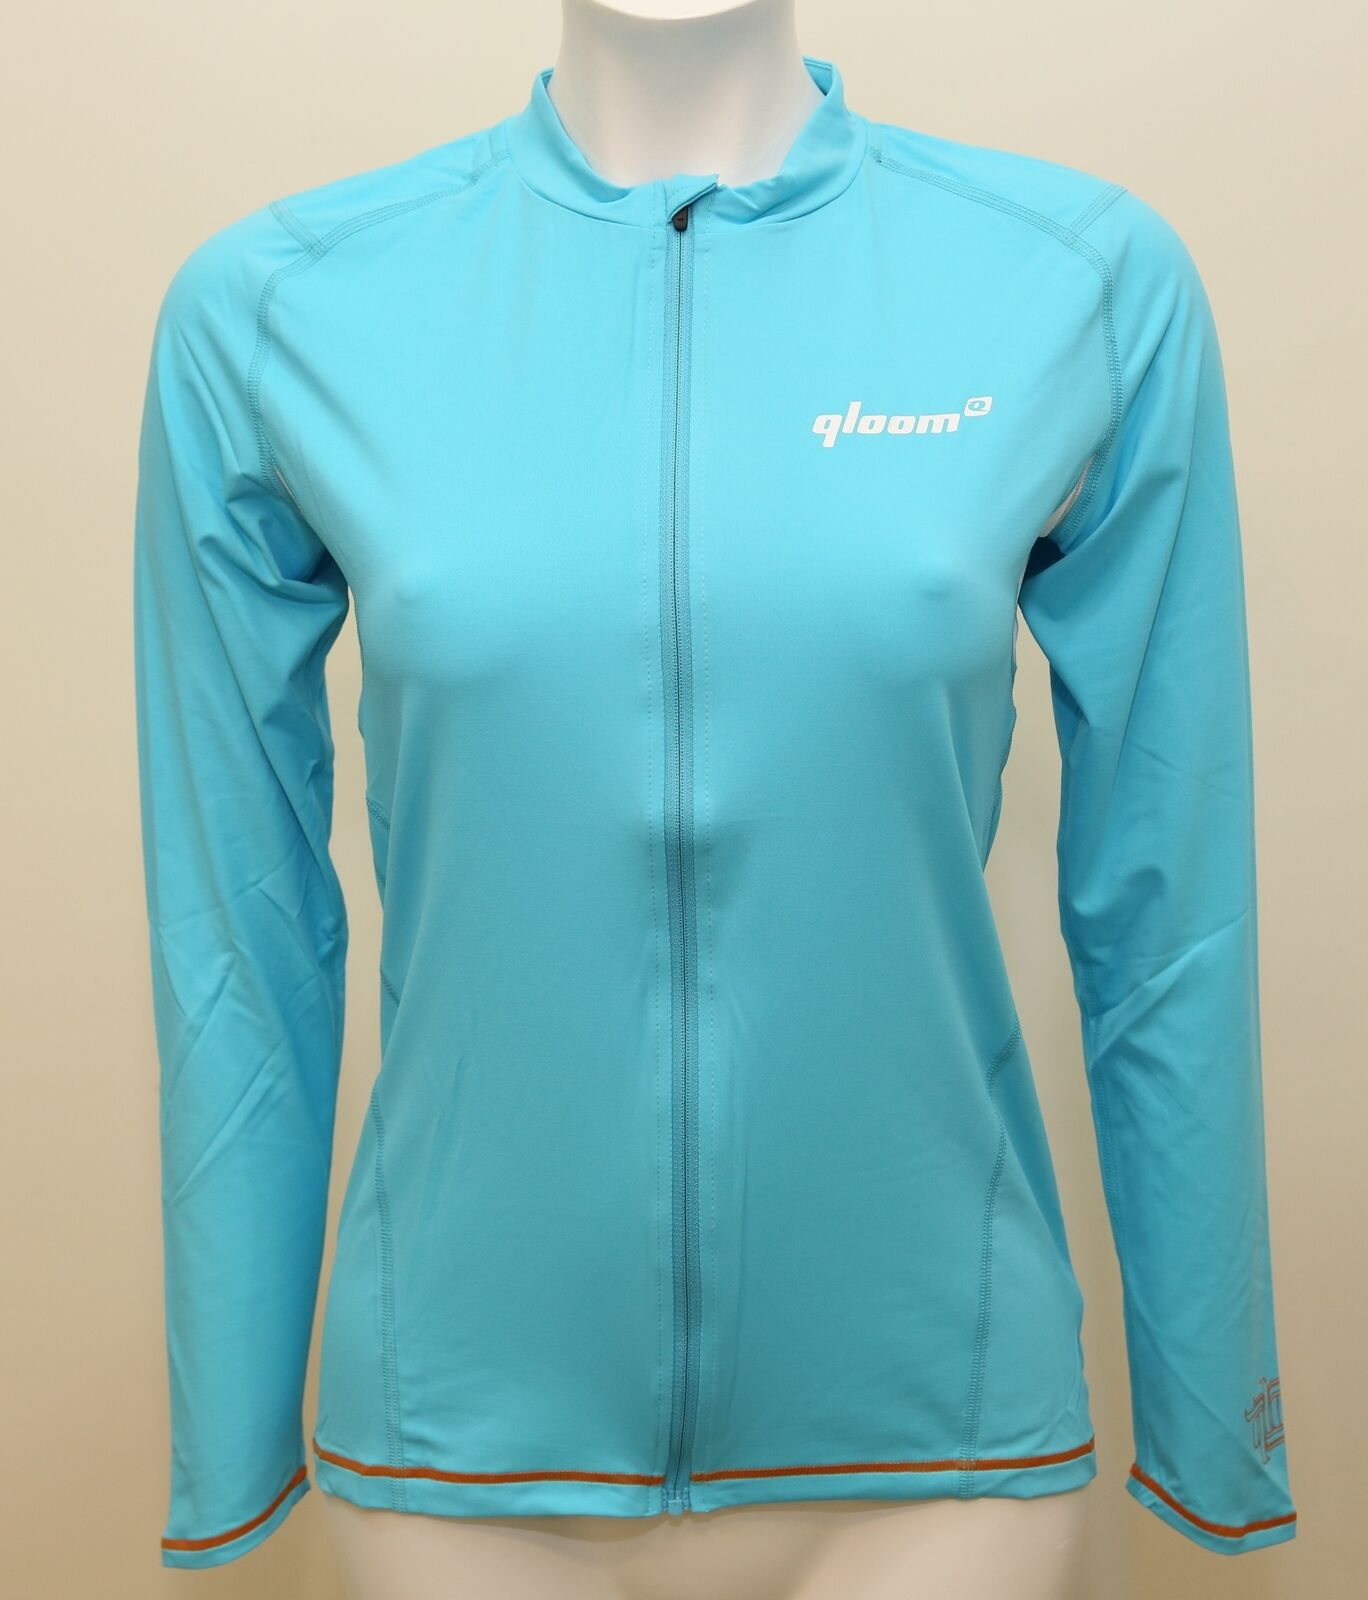 QLOOM NOOSA long sleeves Training apparel W's  Sky  for sale online